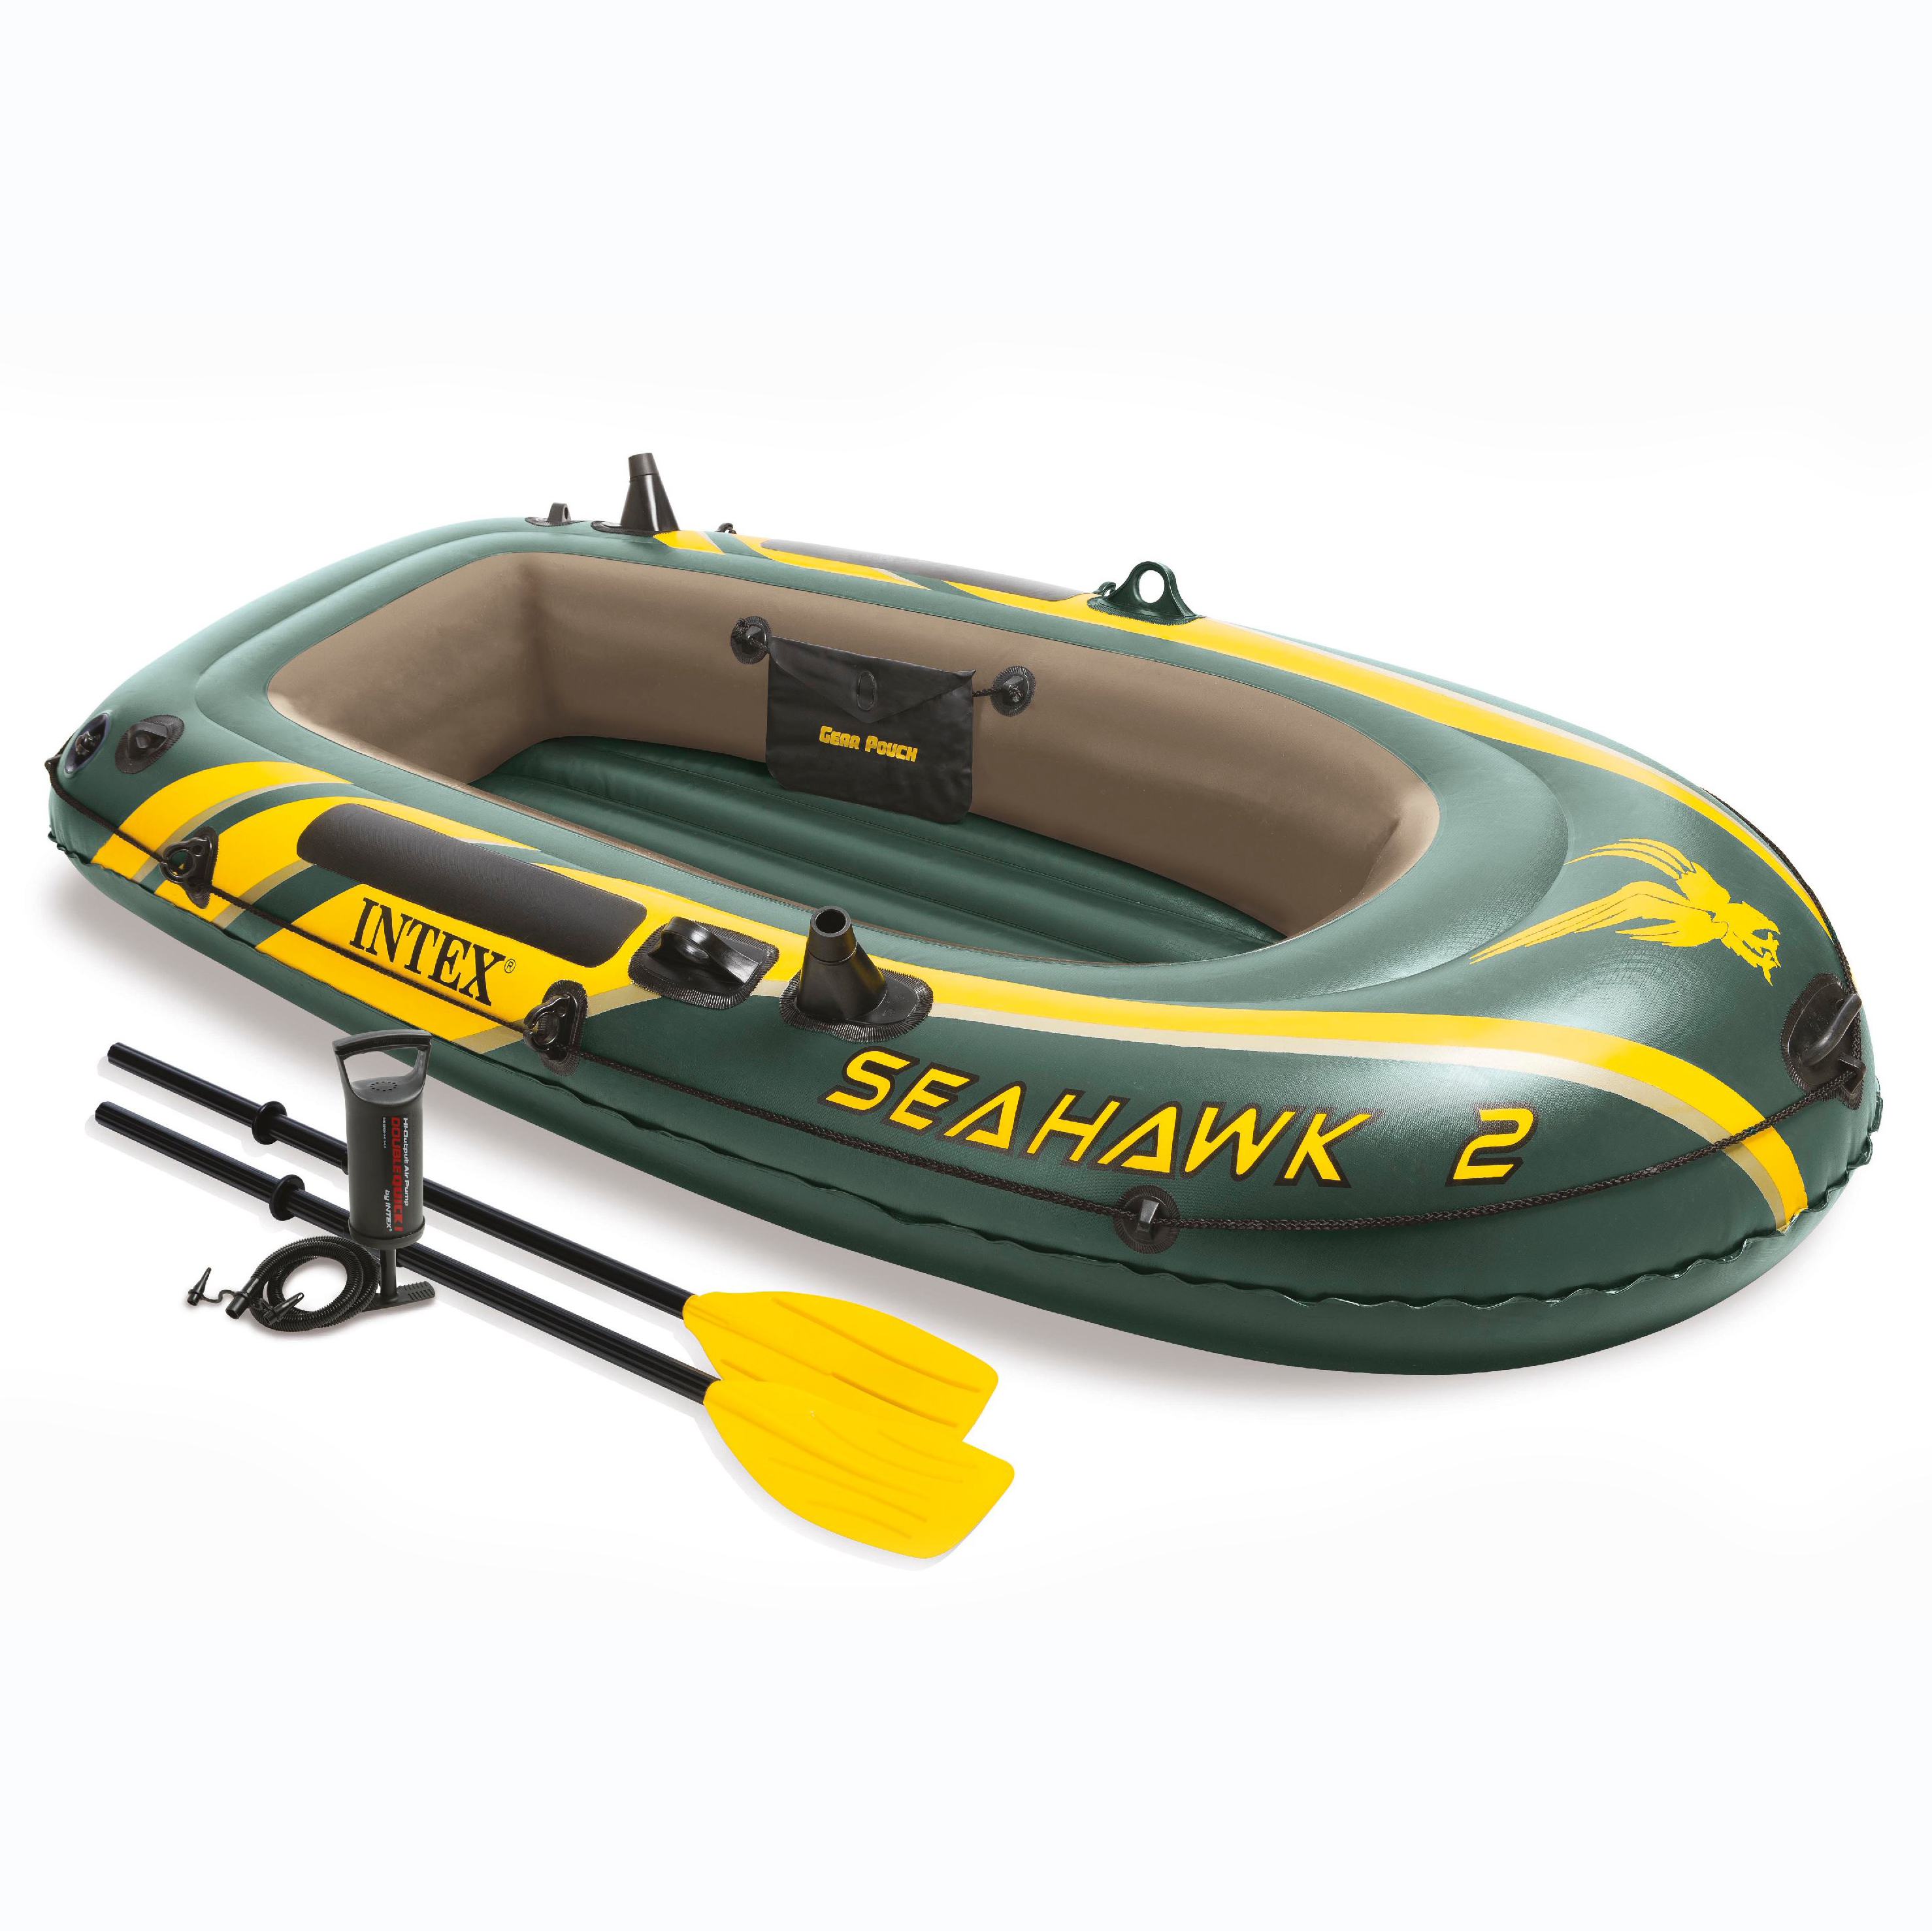 Intex Recreation Seahawk 2 Inflatable Boat Set With Oars ...